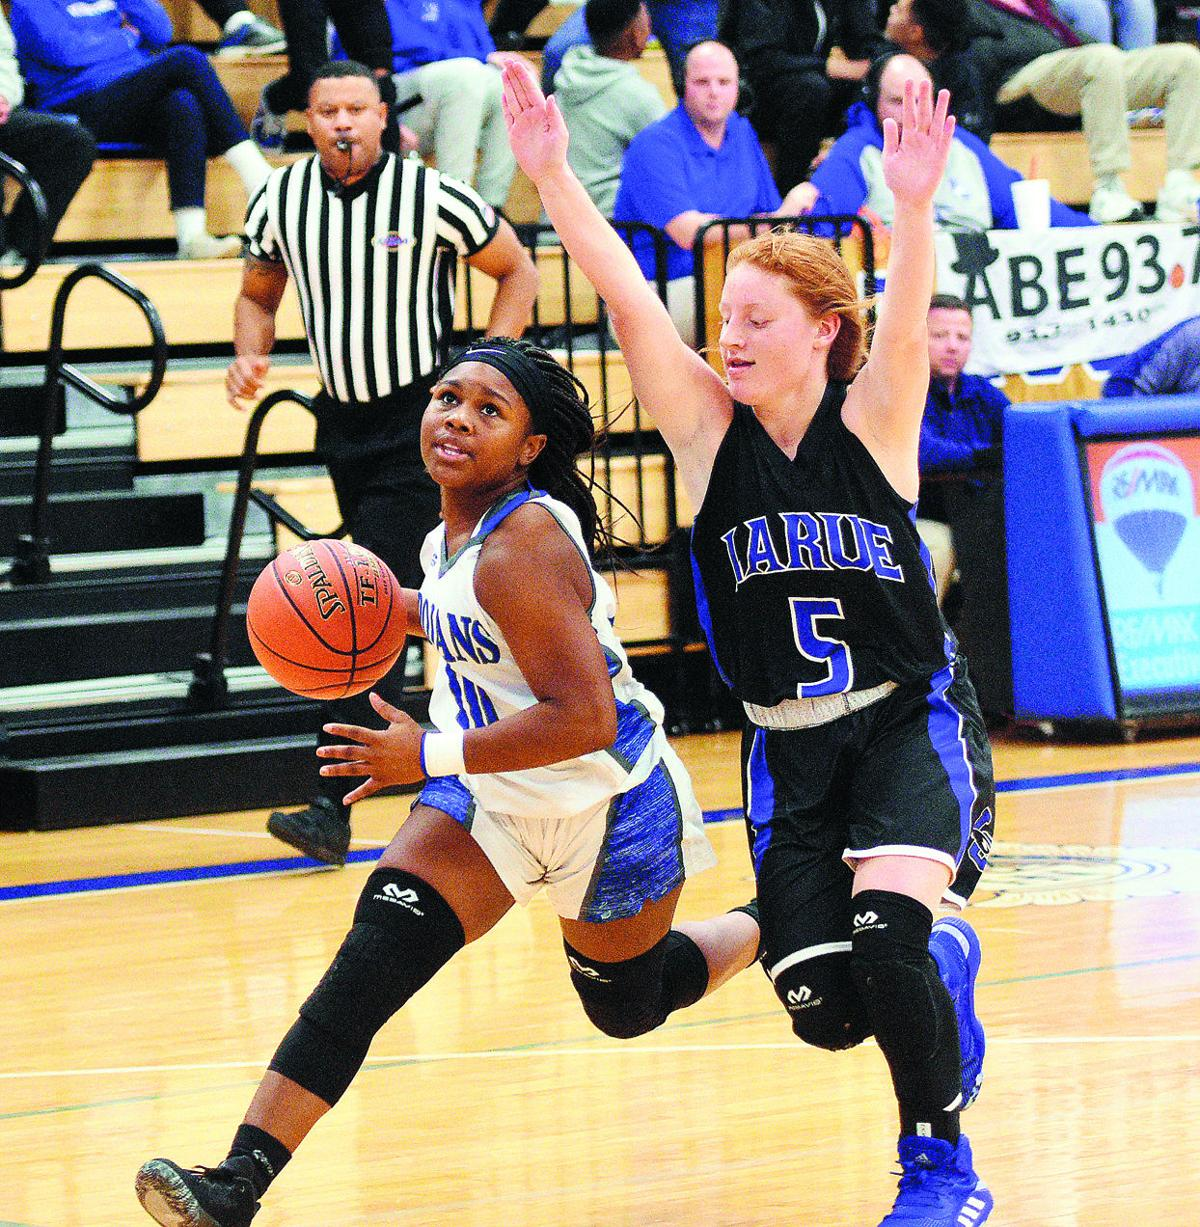 GIRLS' BASKETBALL: North topples LaRue